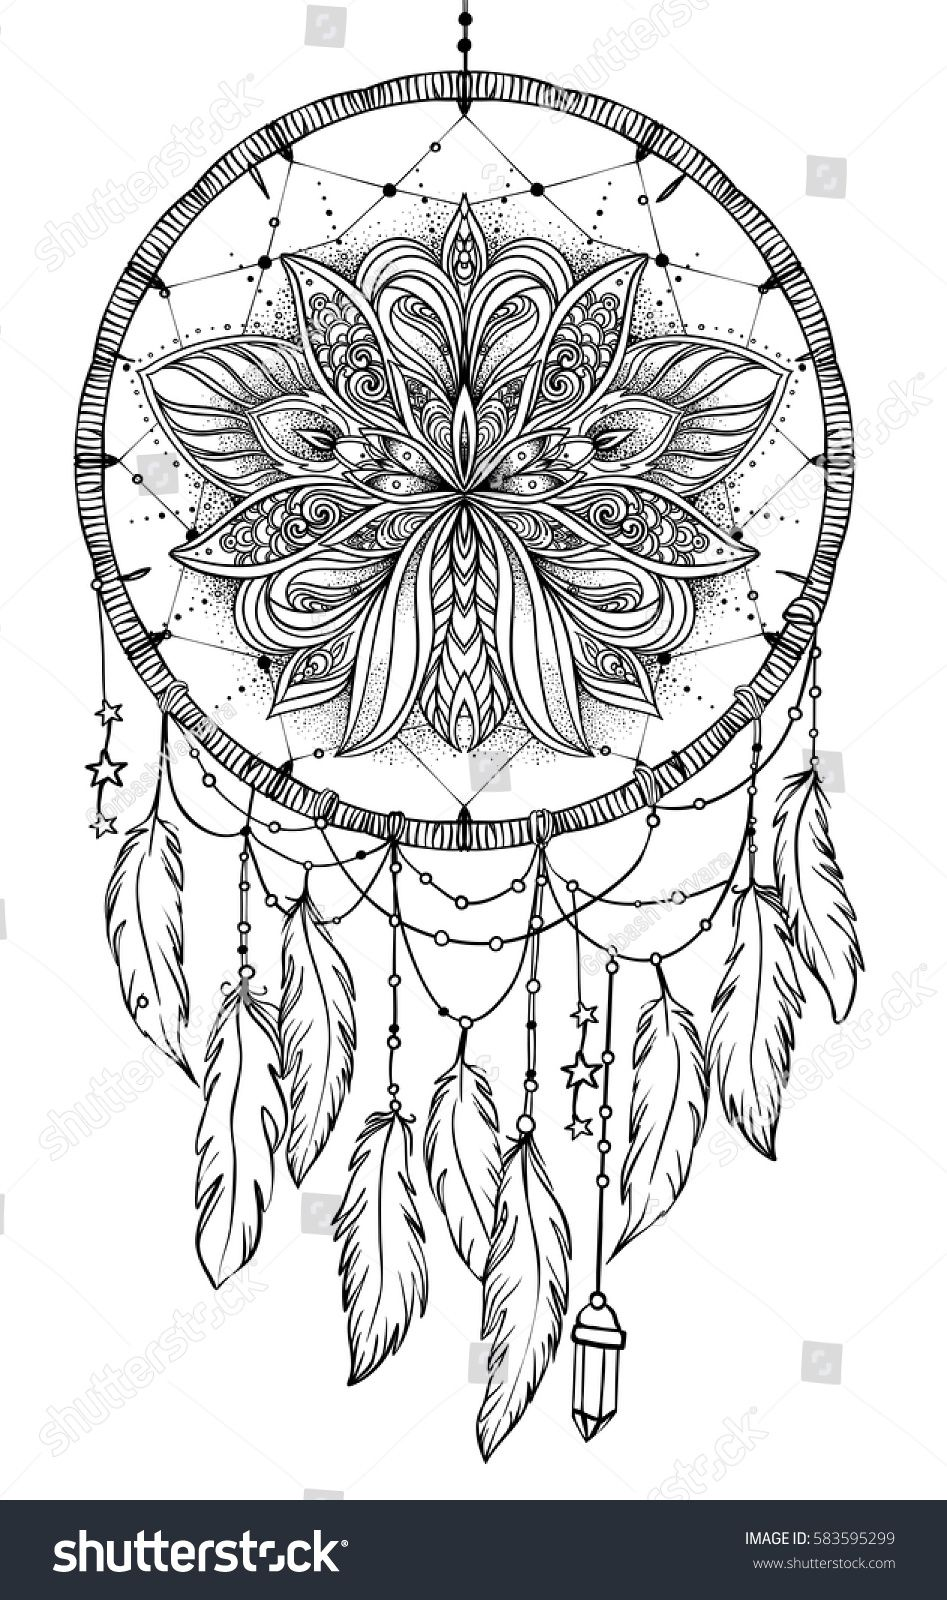 Hand drawn native american indian talisman dreamcatcher with feathers and moon vector hipster illustration isolated on white ethnic design boho chic